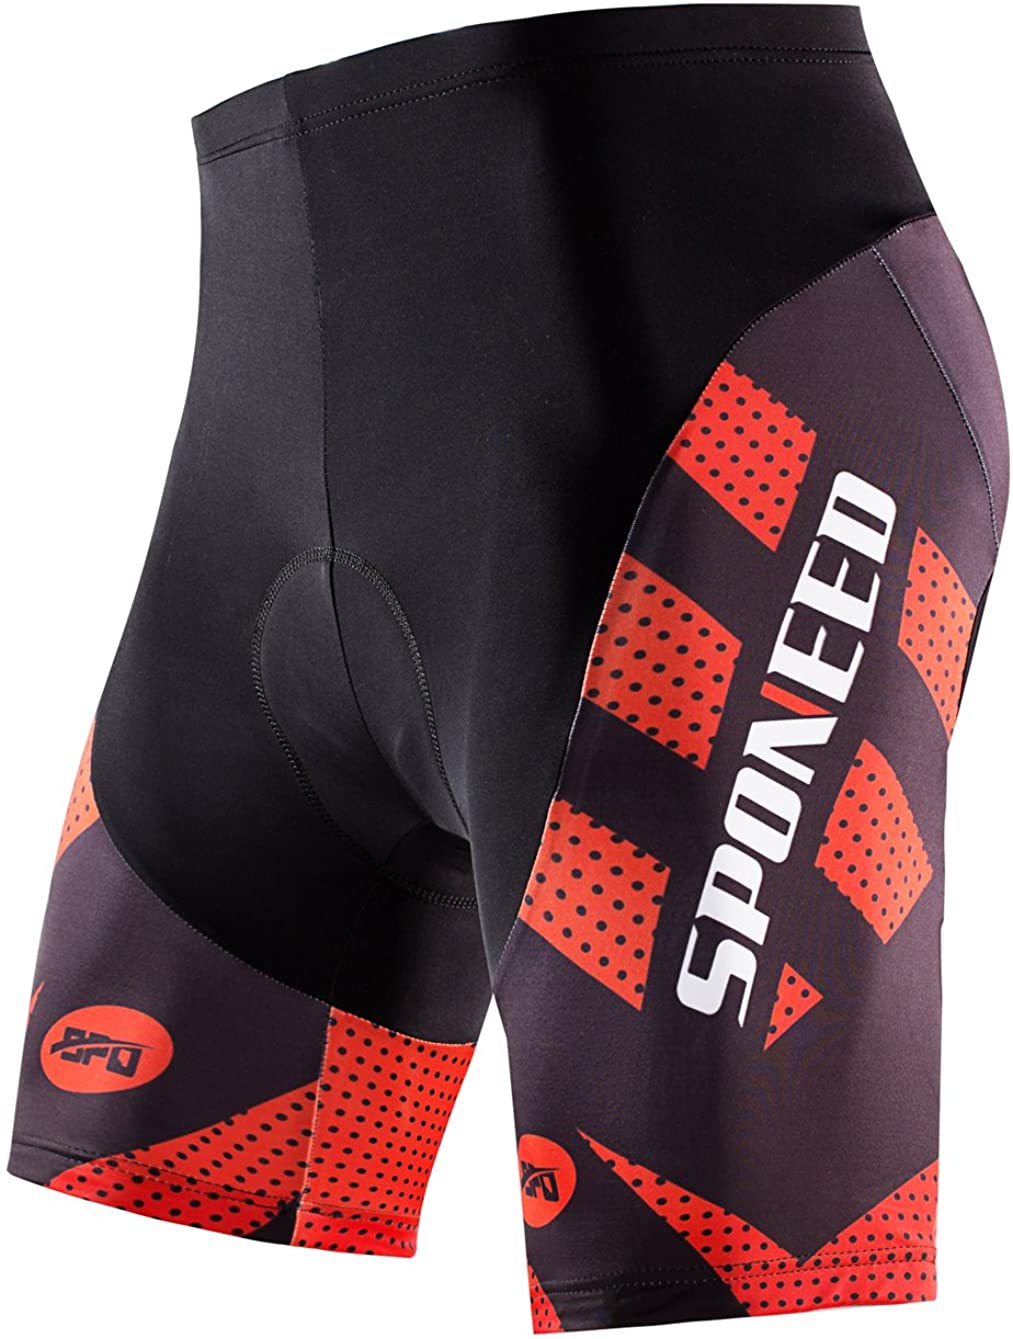 sponeed OFFicial Men's Cycling Shorts Padded Bike Finally popular brand Bicycle Riding Bi Pants